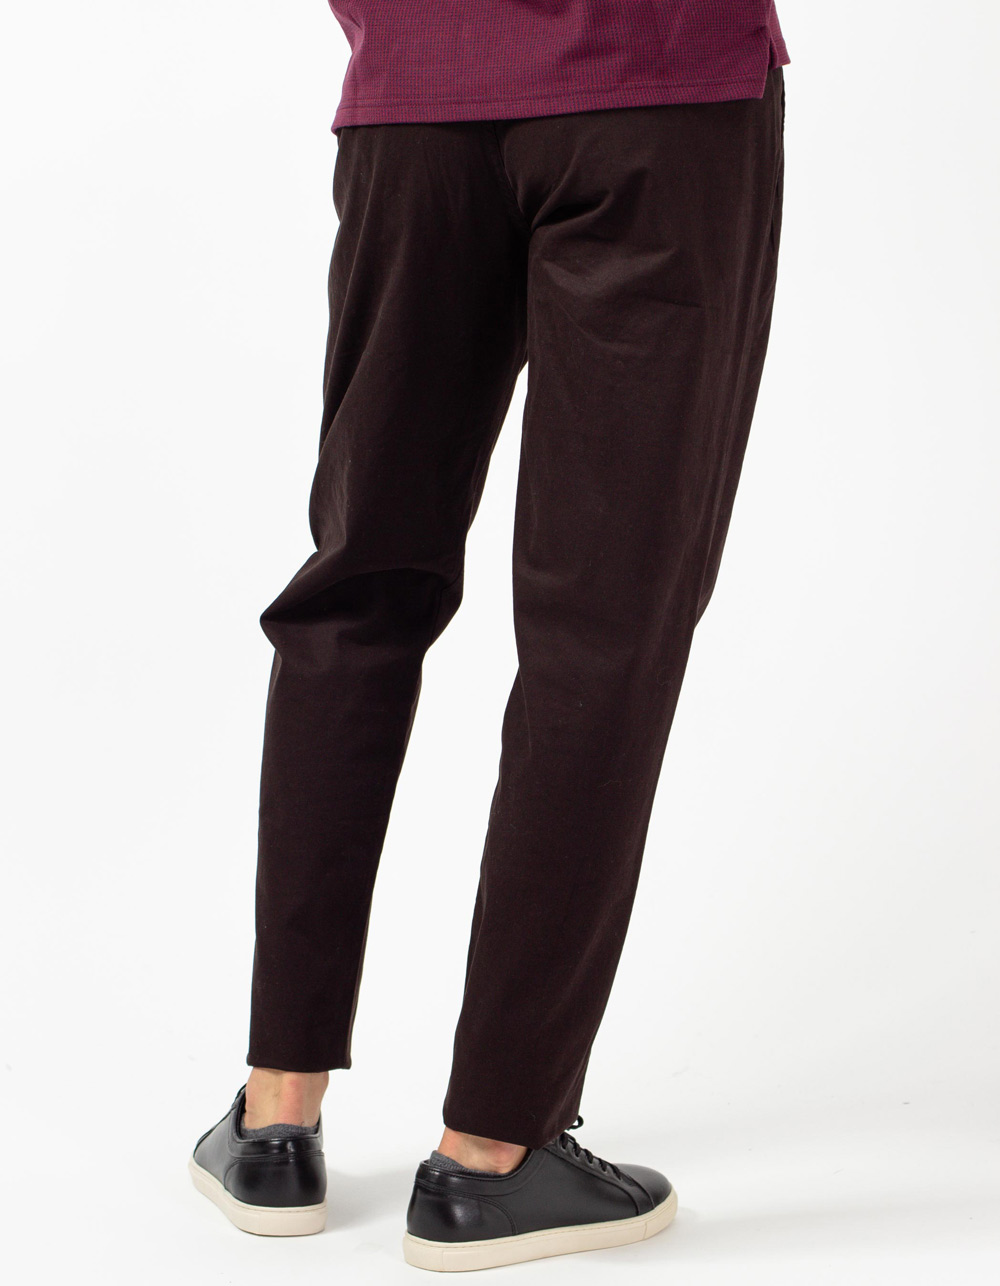 Black trousers with darts - Backside